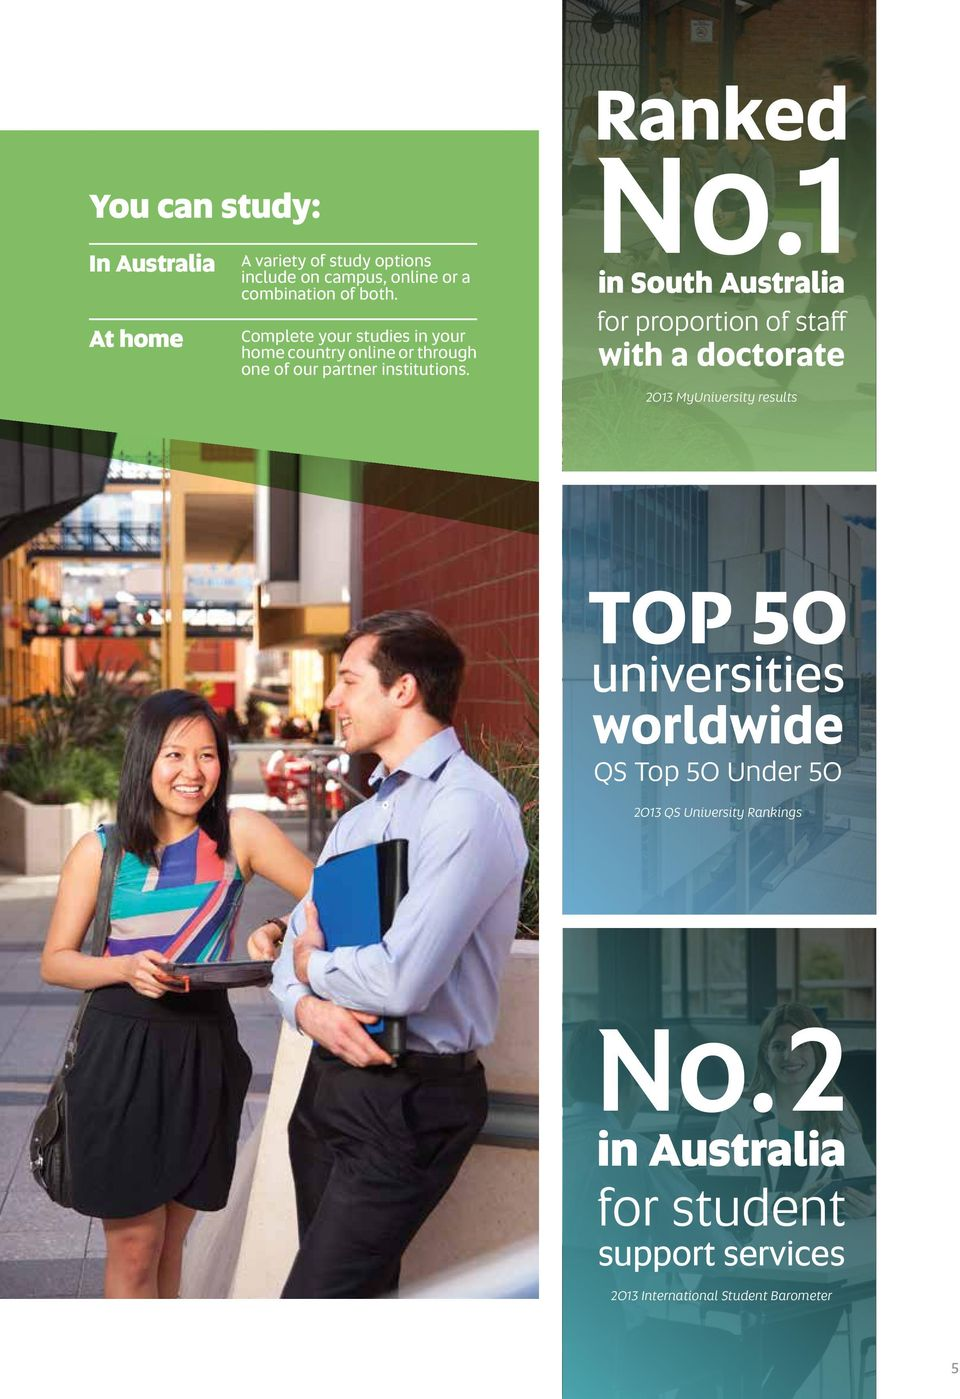 1 in South Australia for proportion of staff with a doctorate 2013 MyUniversity results Top 50 universities worldwide